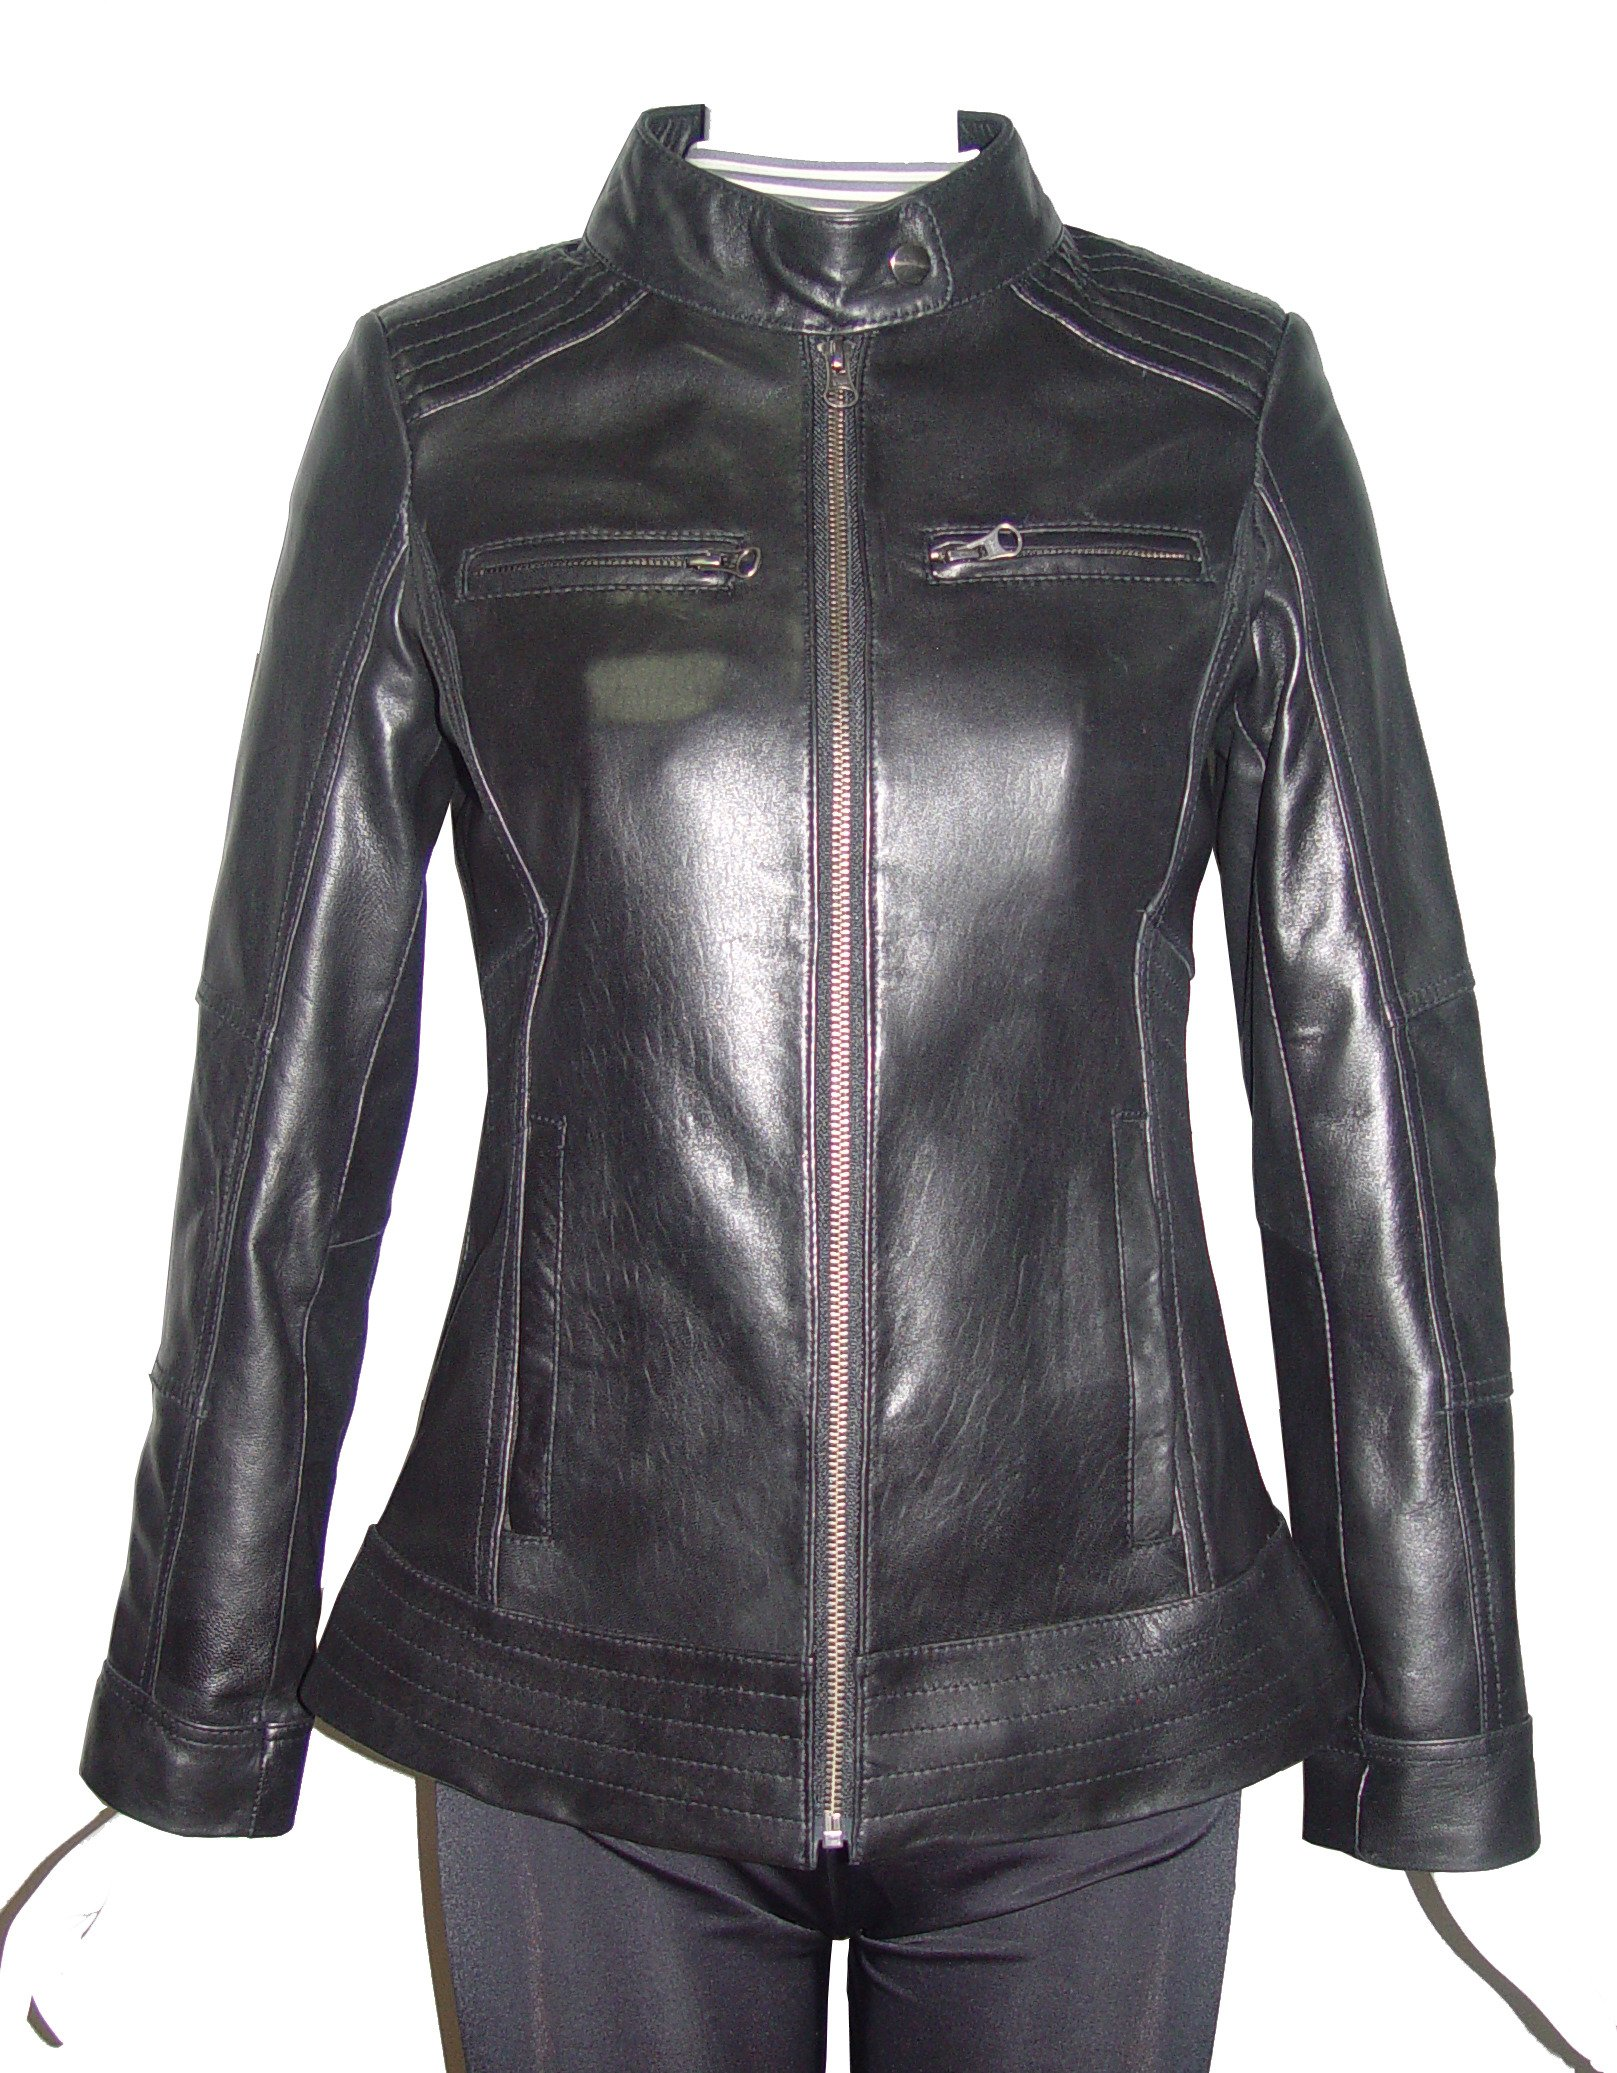 Nettailor 4173 Real Leather Womens Jackets Best Cool Stylish Expensive Lining